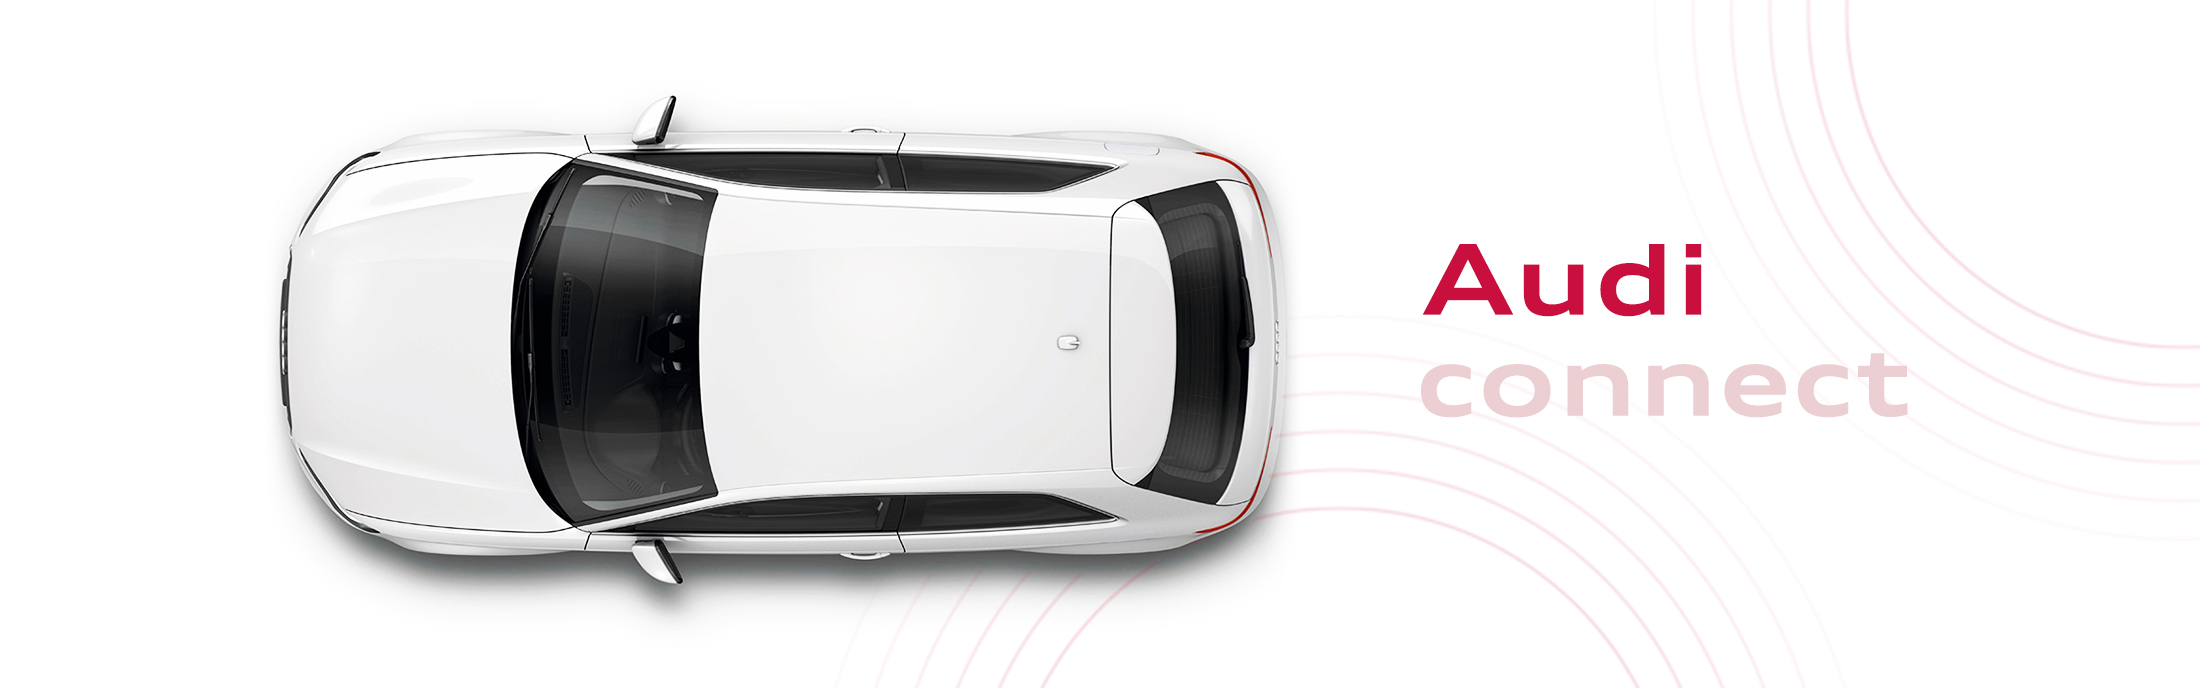 audi_connect_banner.jpg